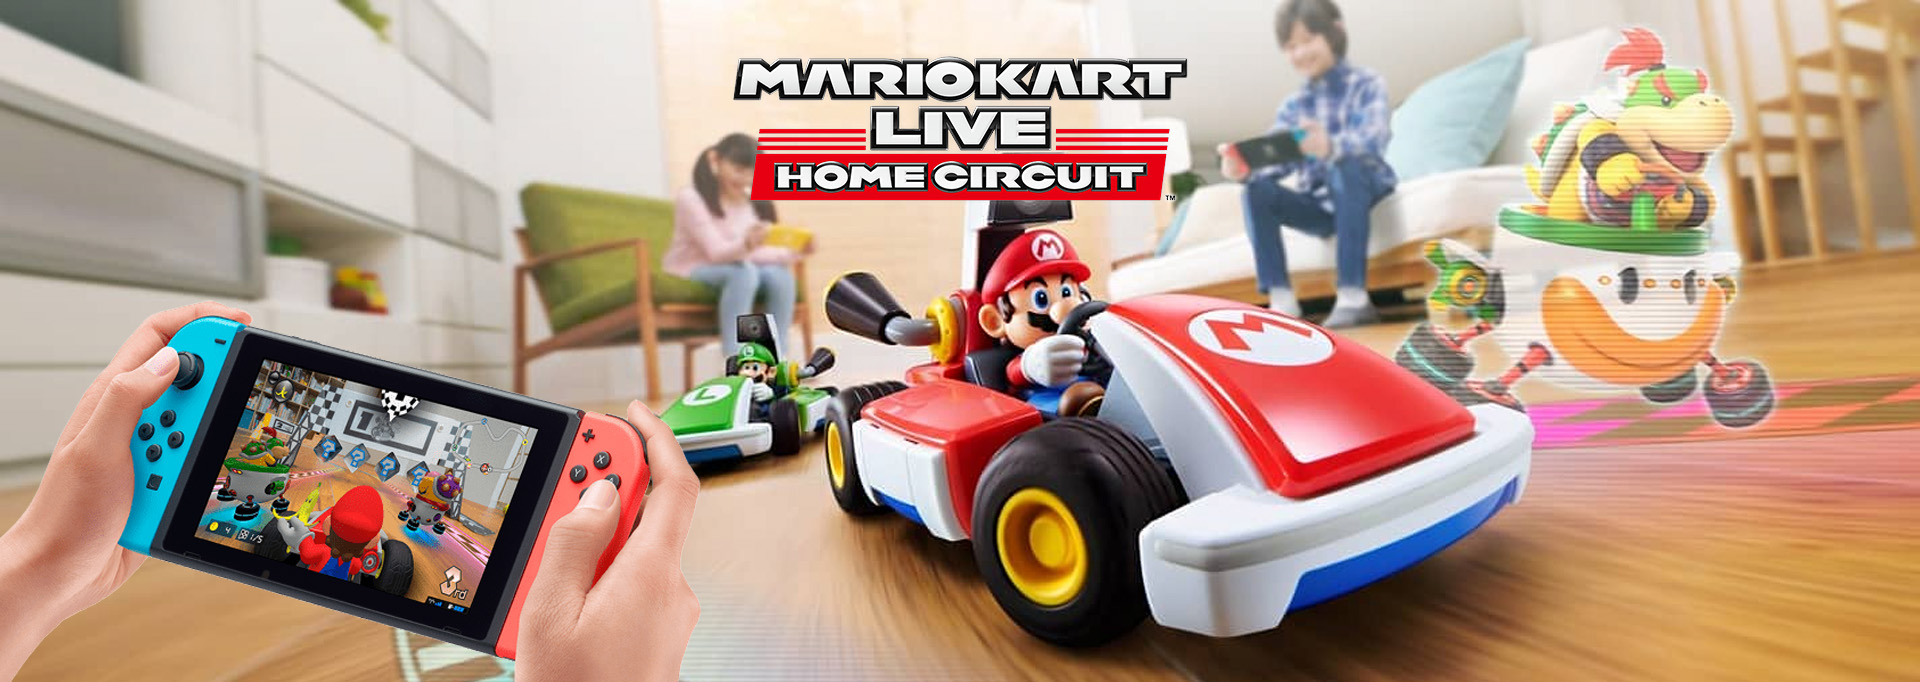 HP-Hero-Mario-Kart-Live-Desk.jpg